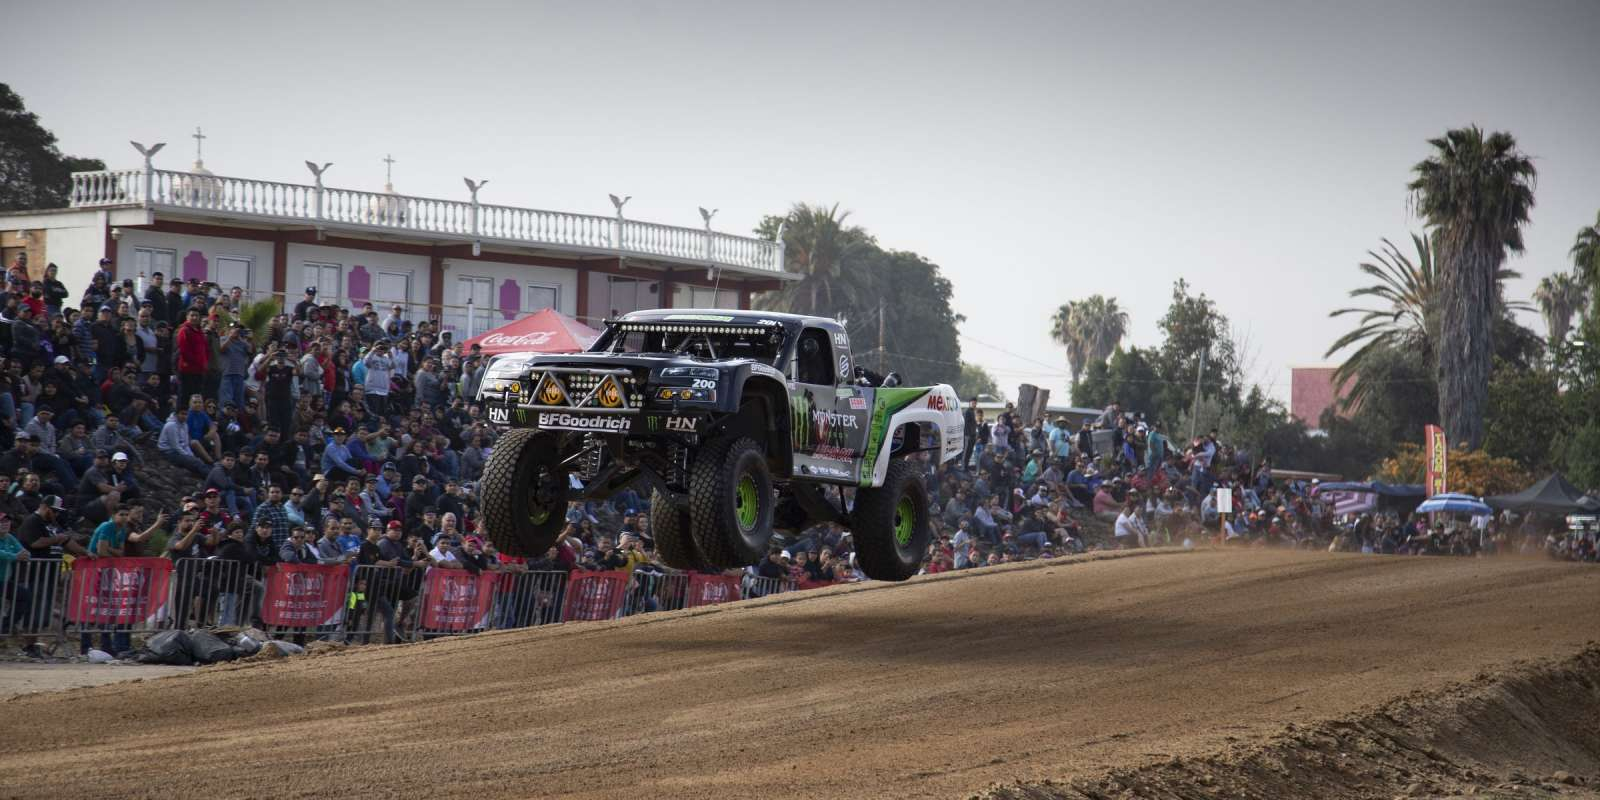 Images from the Baja 500, Mexico